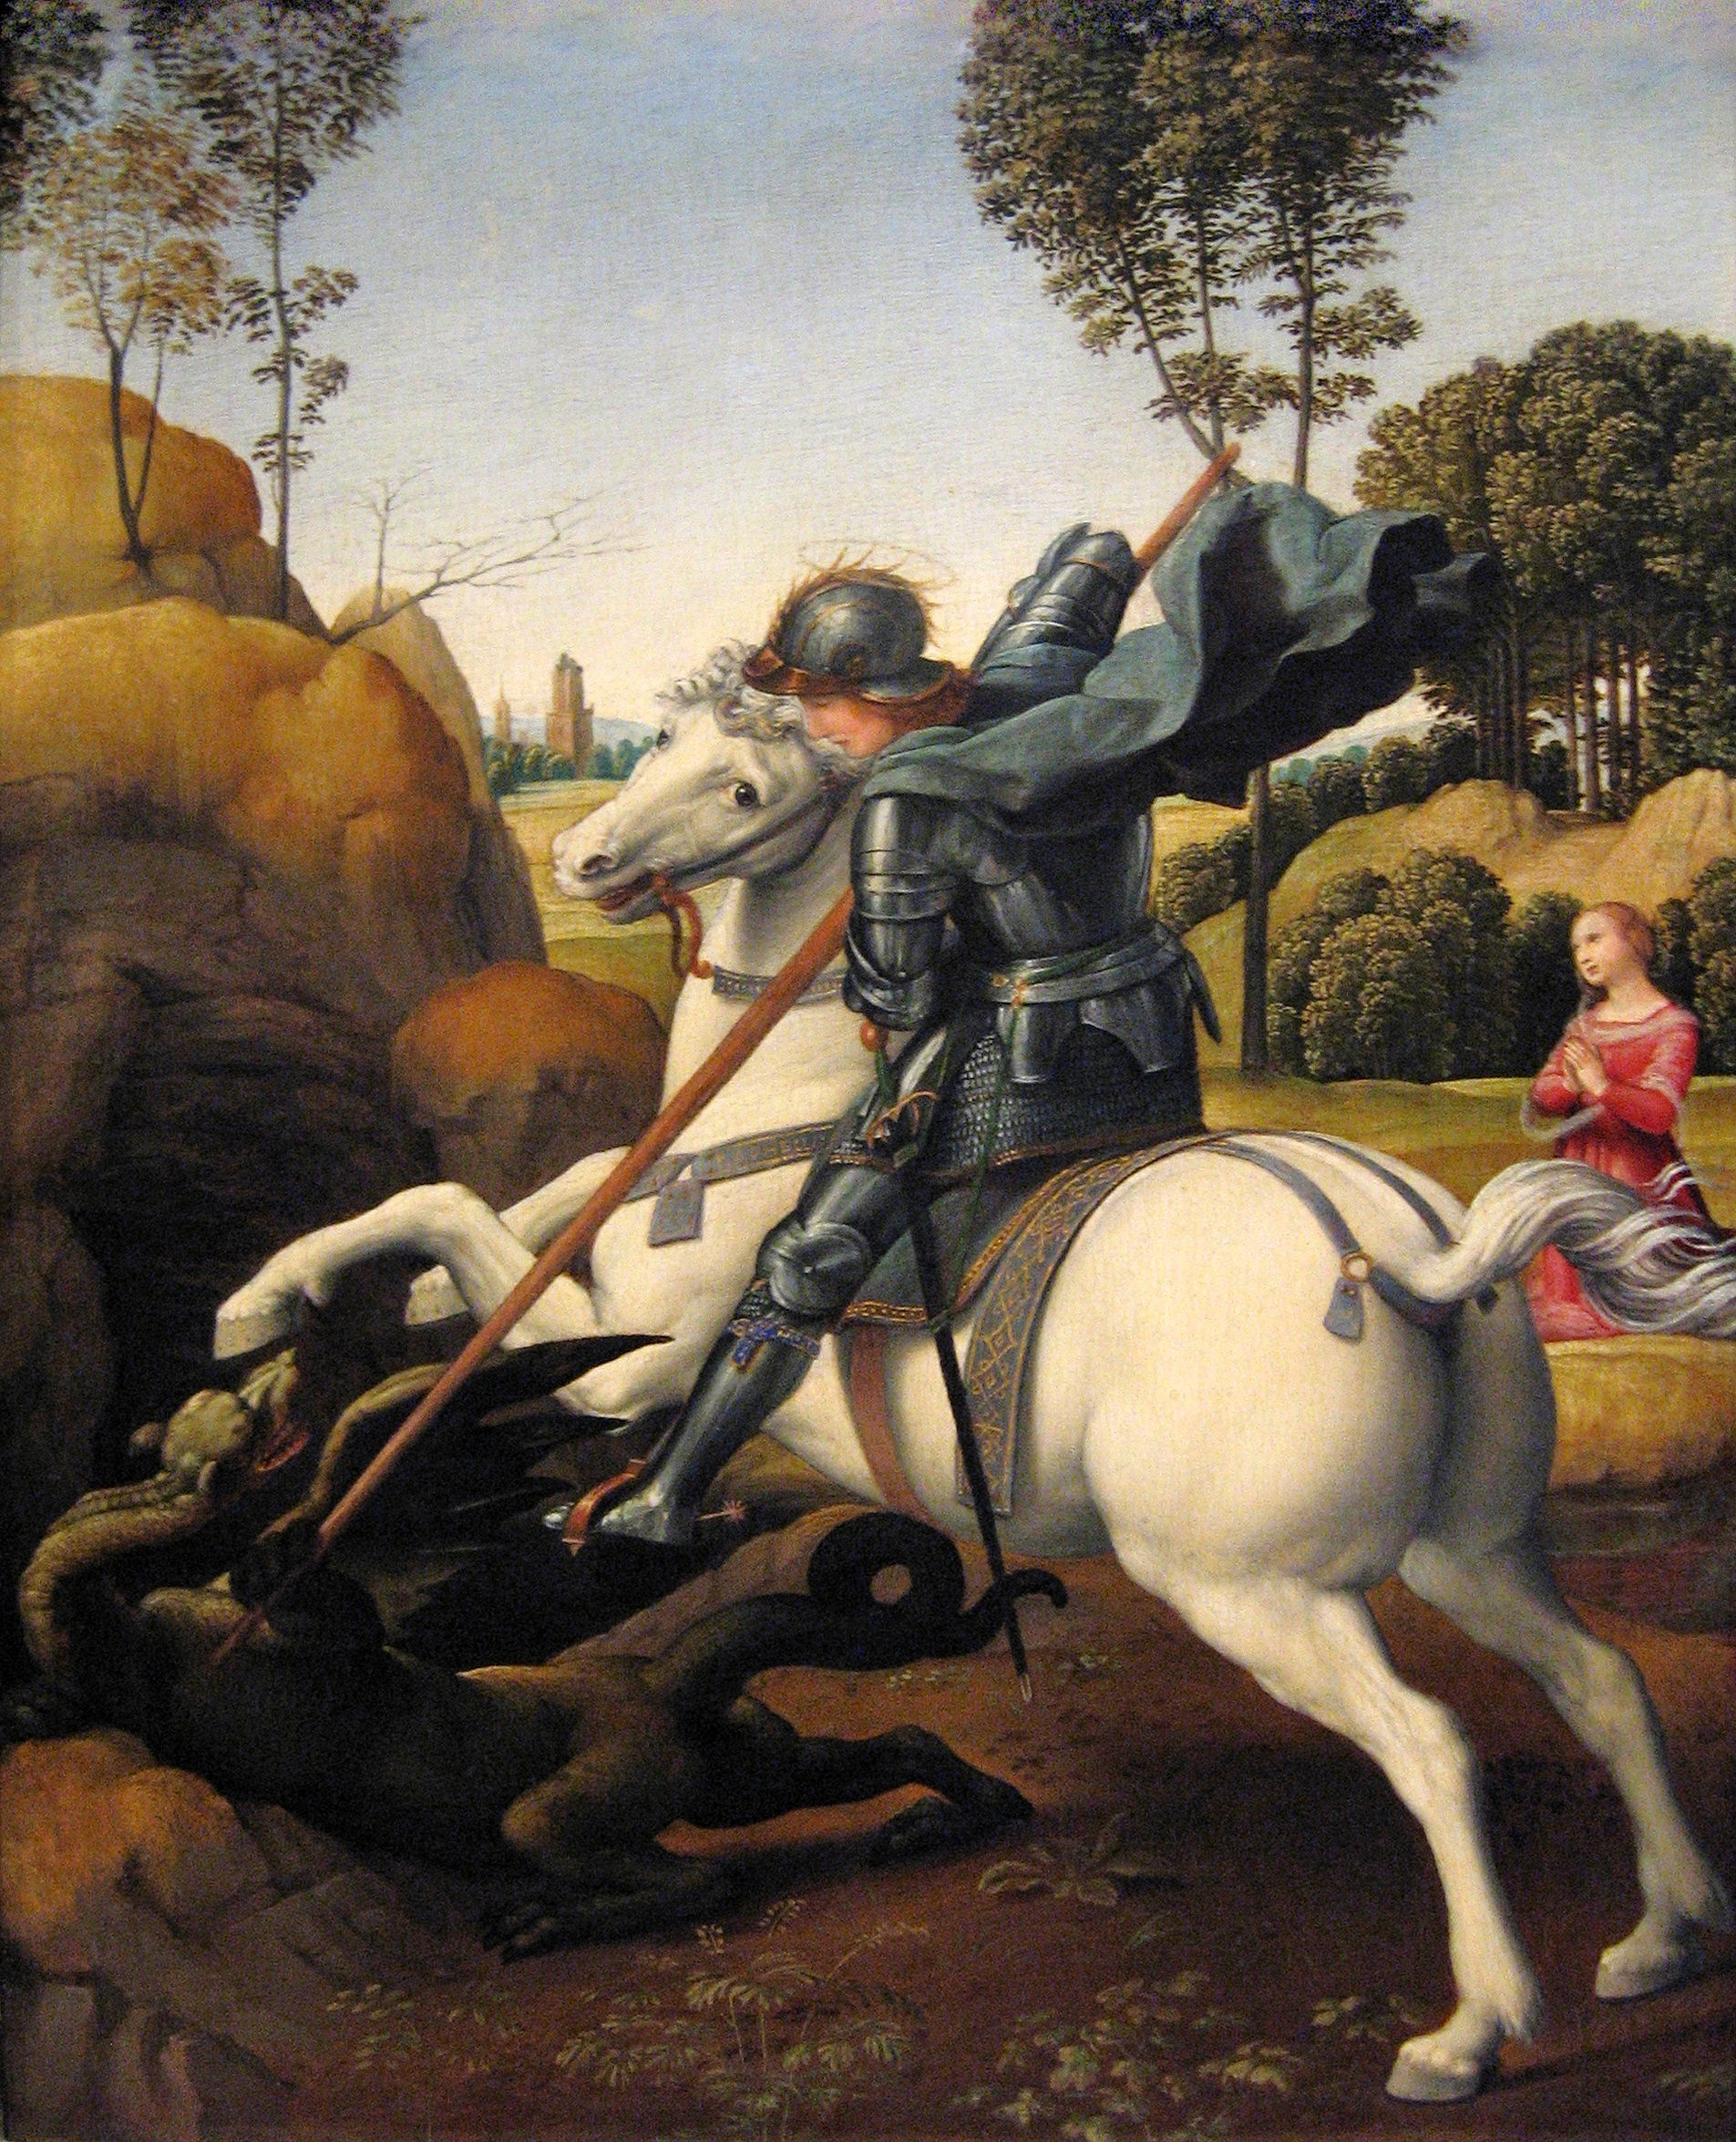 Raphael - Saint George and the Dragon